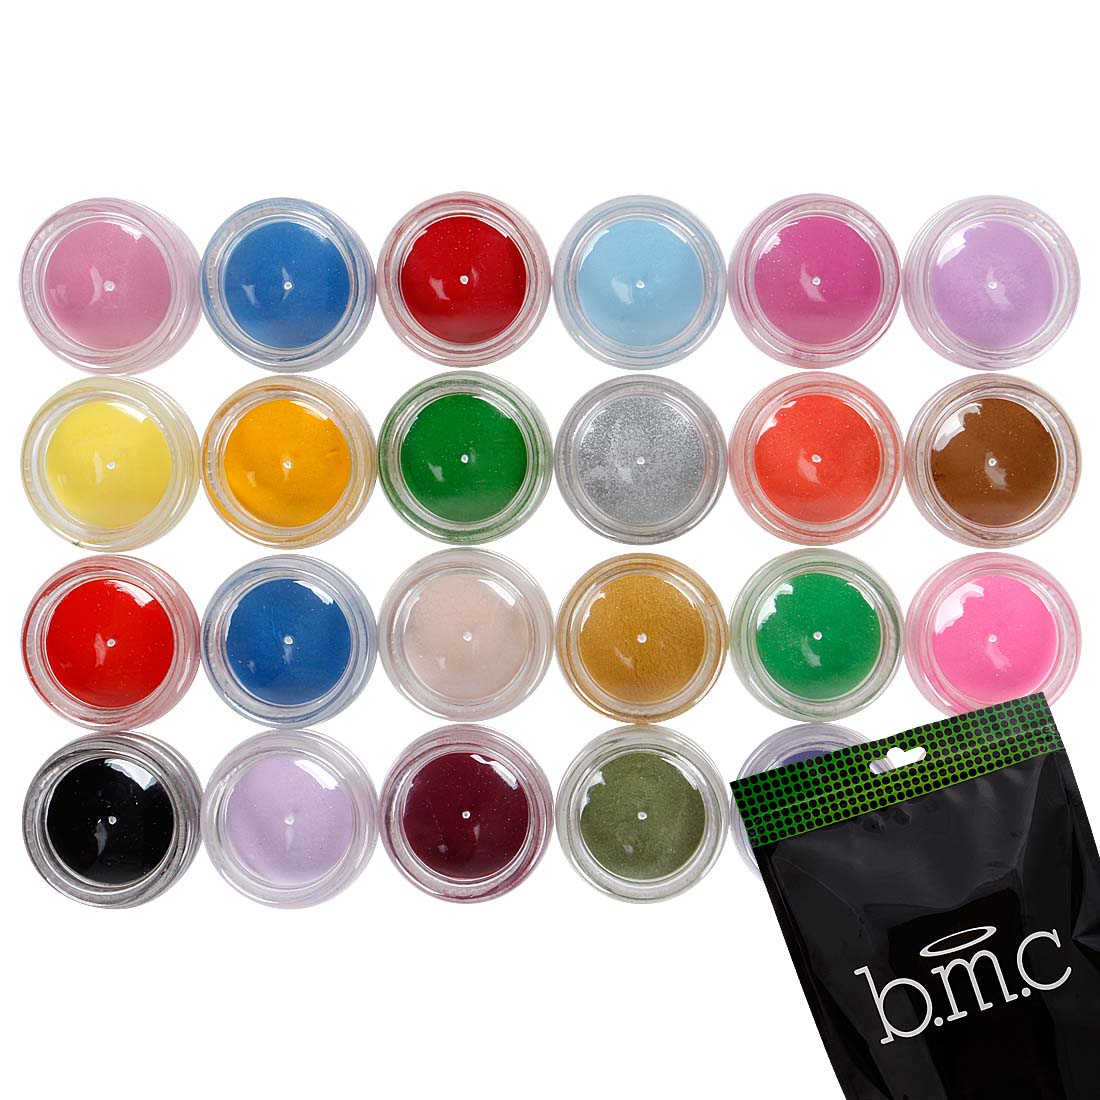 BMC 3D Sculpting Extensions Manicure Nail Art Acrylic Powders Pots - 24 Color Kit